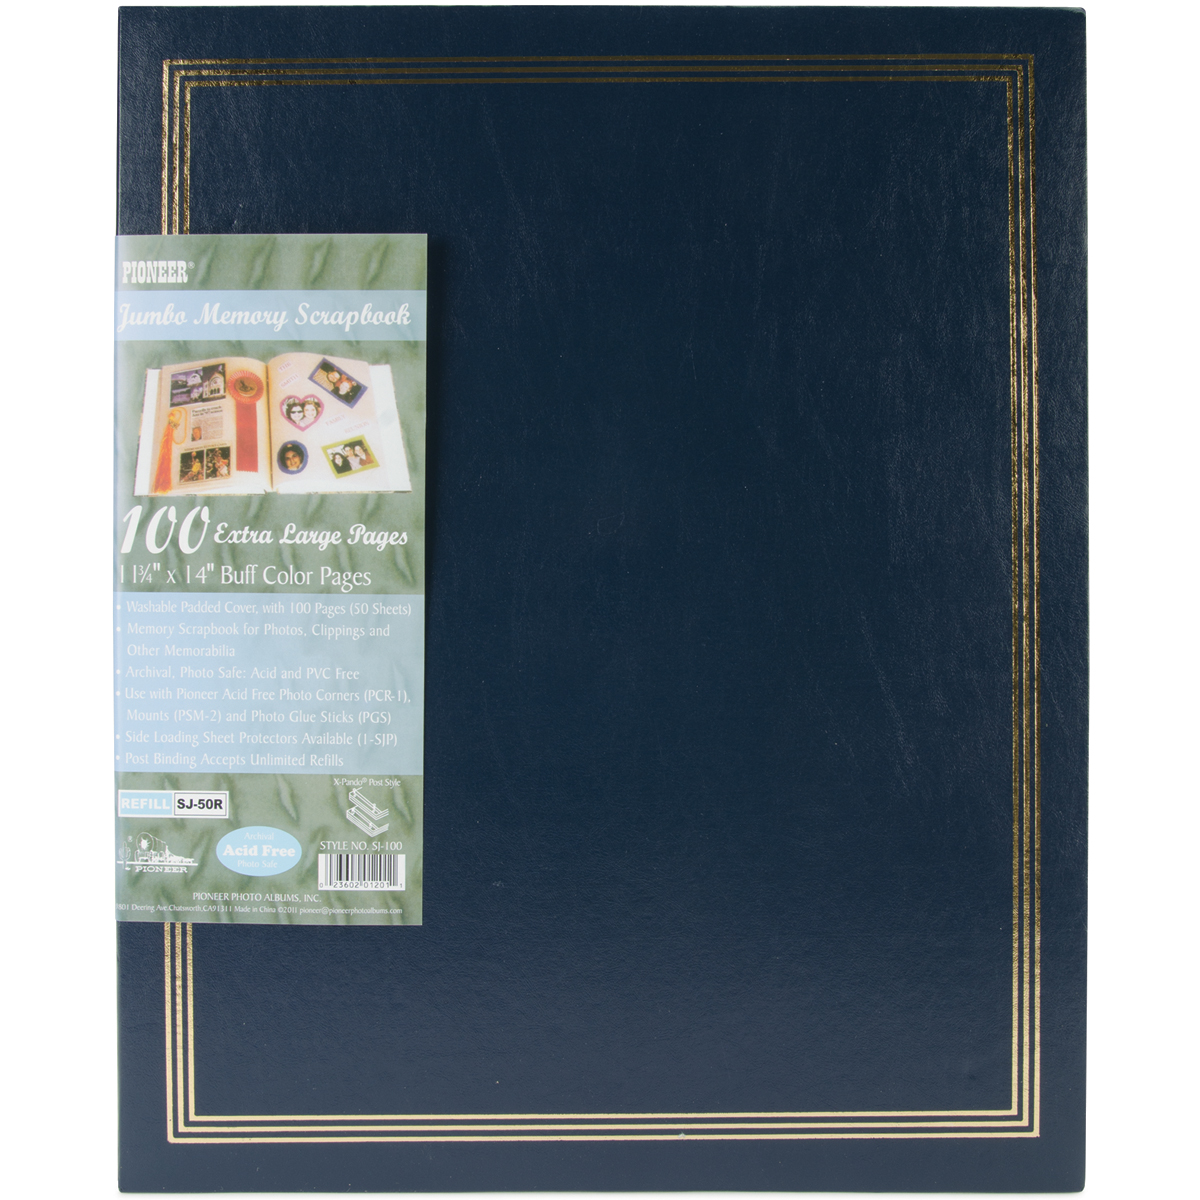 Postbound Refill Pages For SJ-100 25 Per Package 11 X14